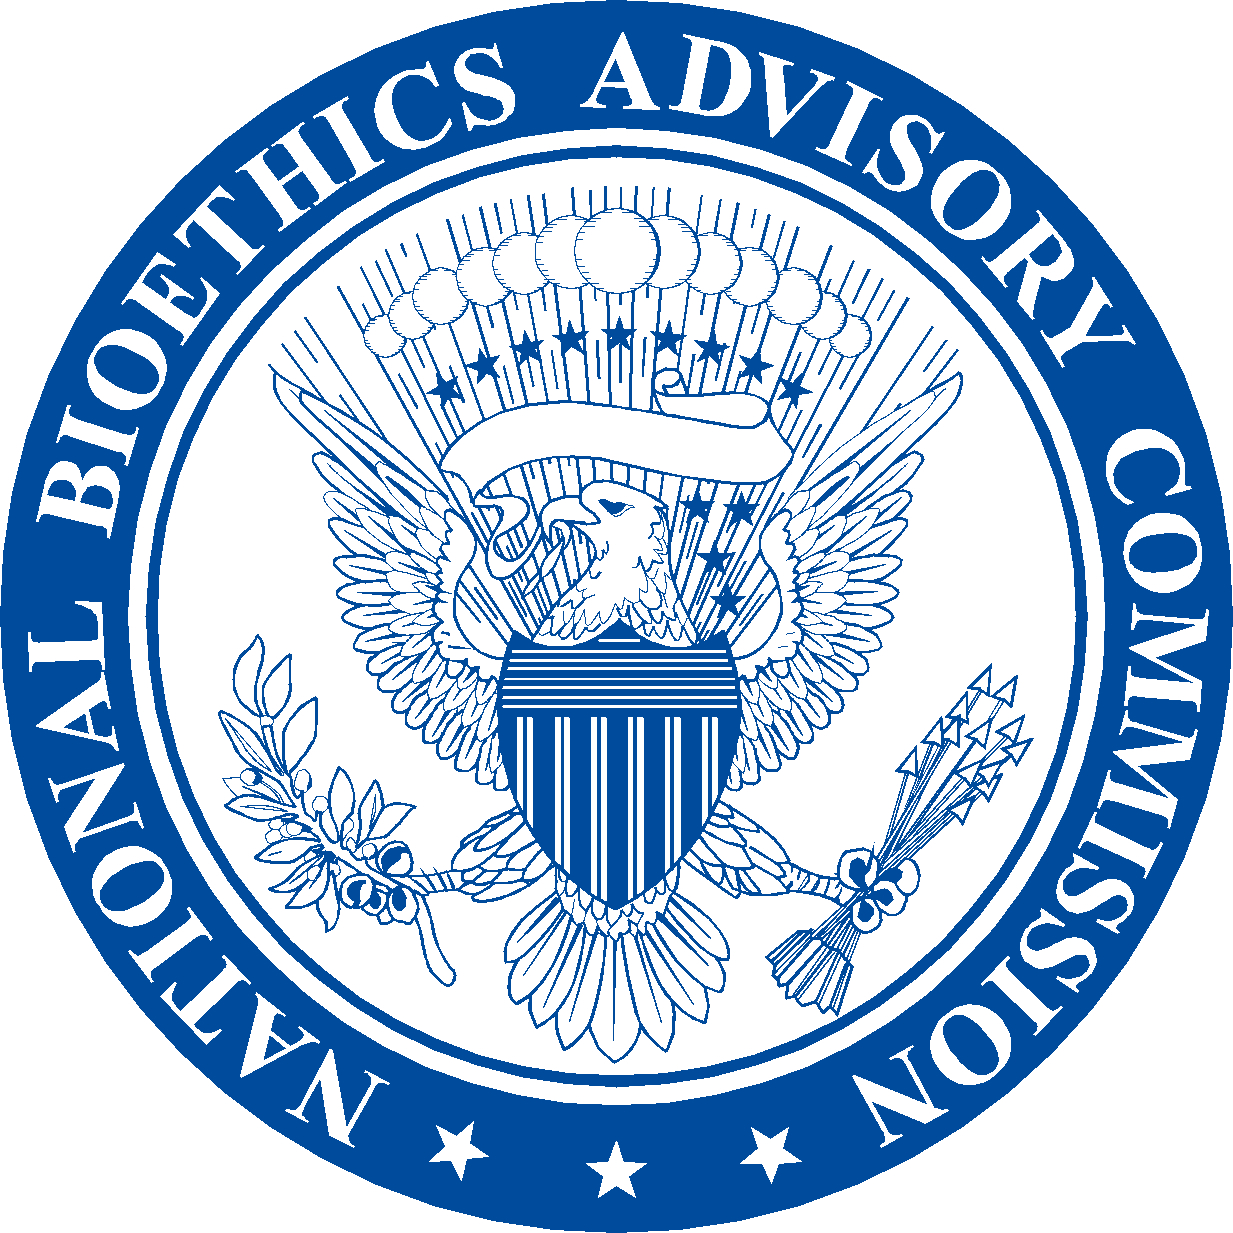 US-NationalBioethicsAdvisoryCommission-Logo.png